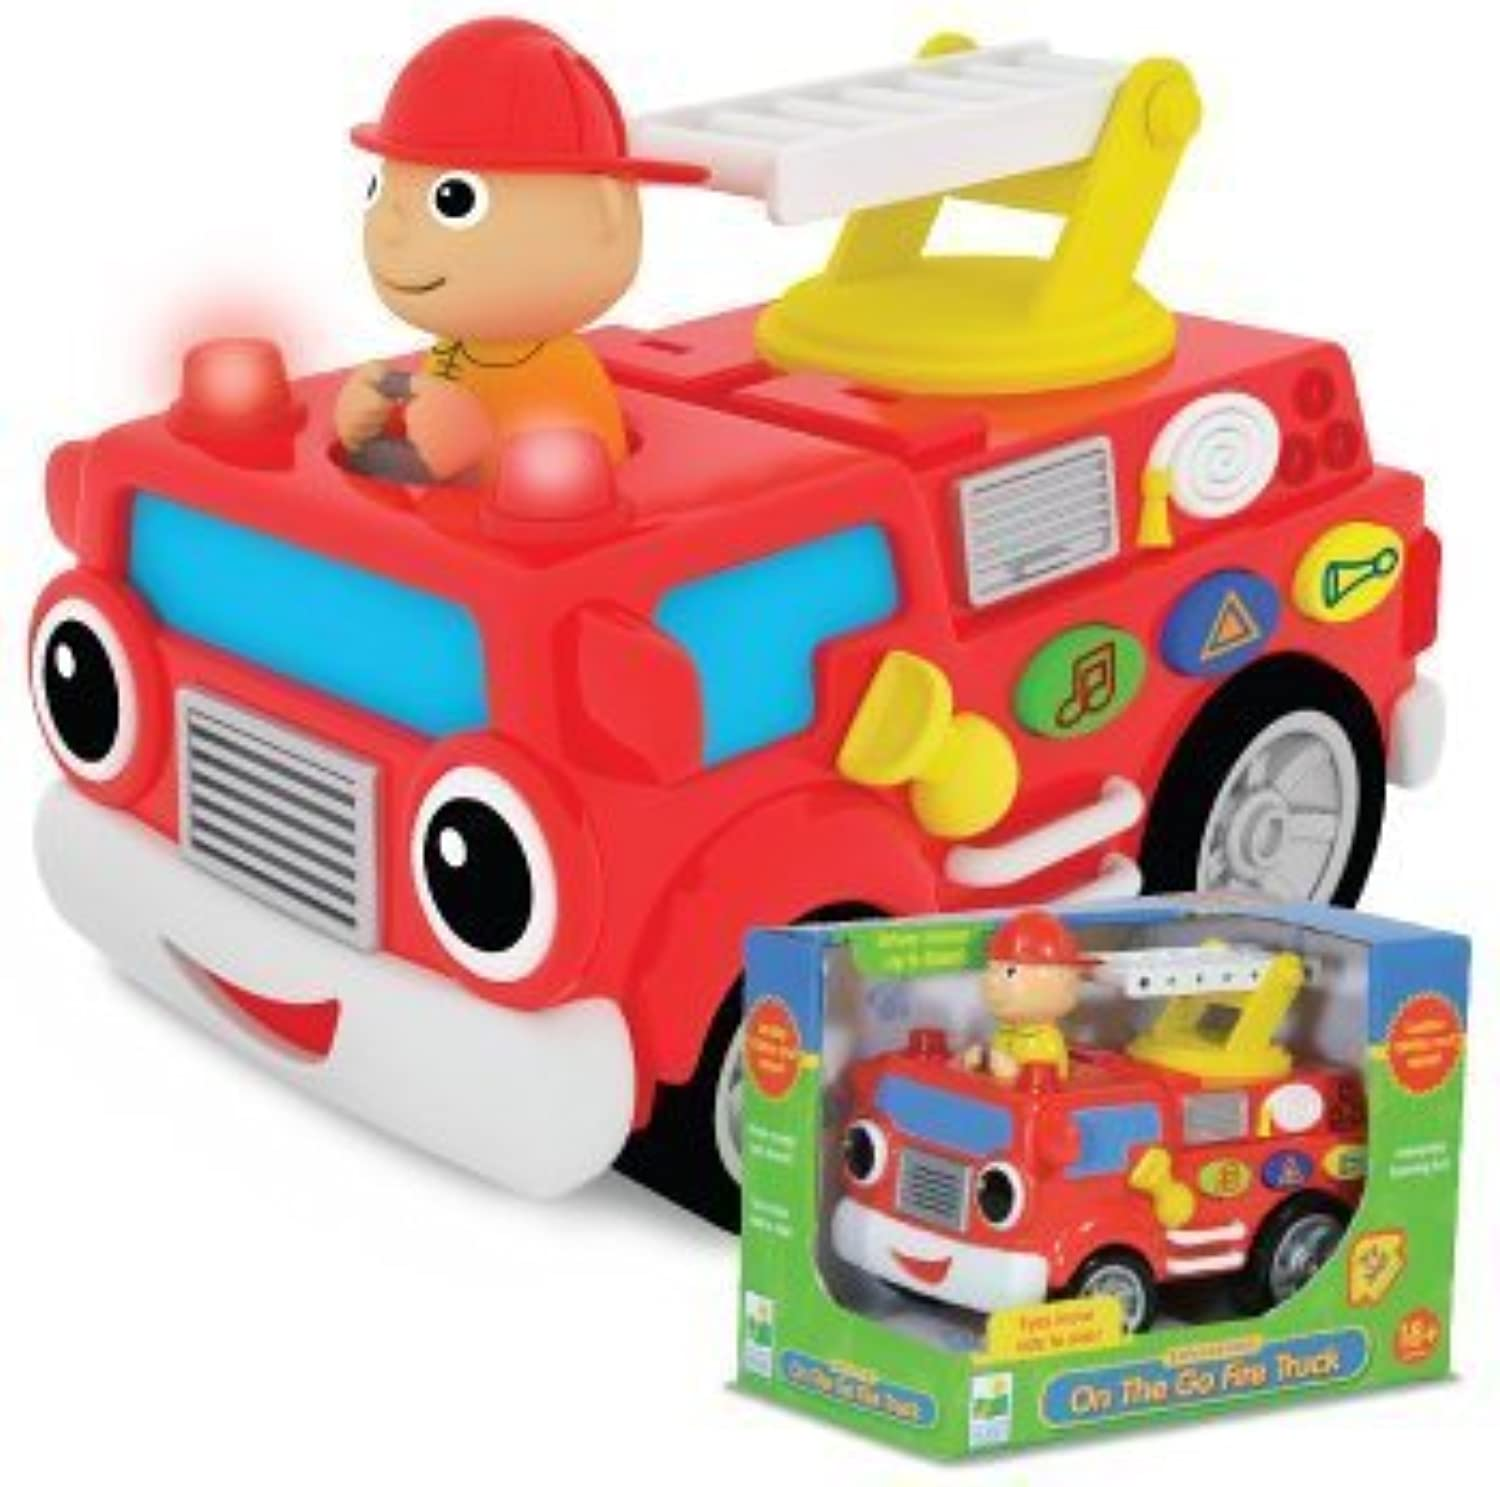 The Learning Journey On the Go Fire Truck by The Learning Journey International [Toy]